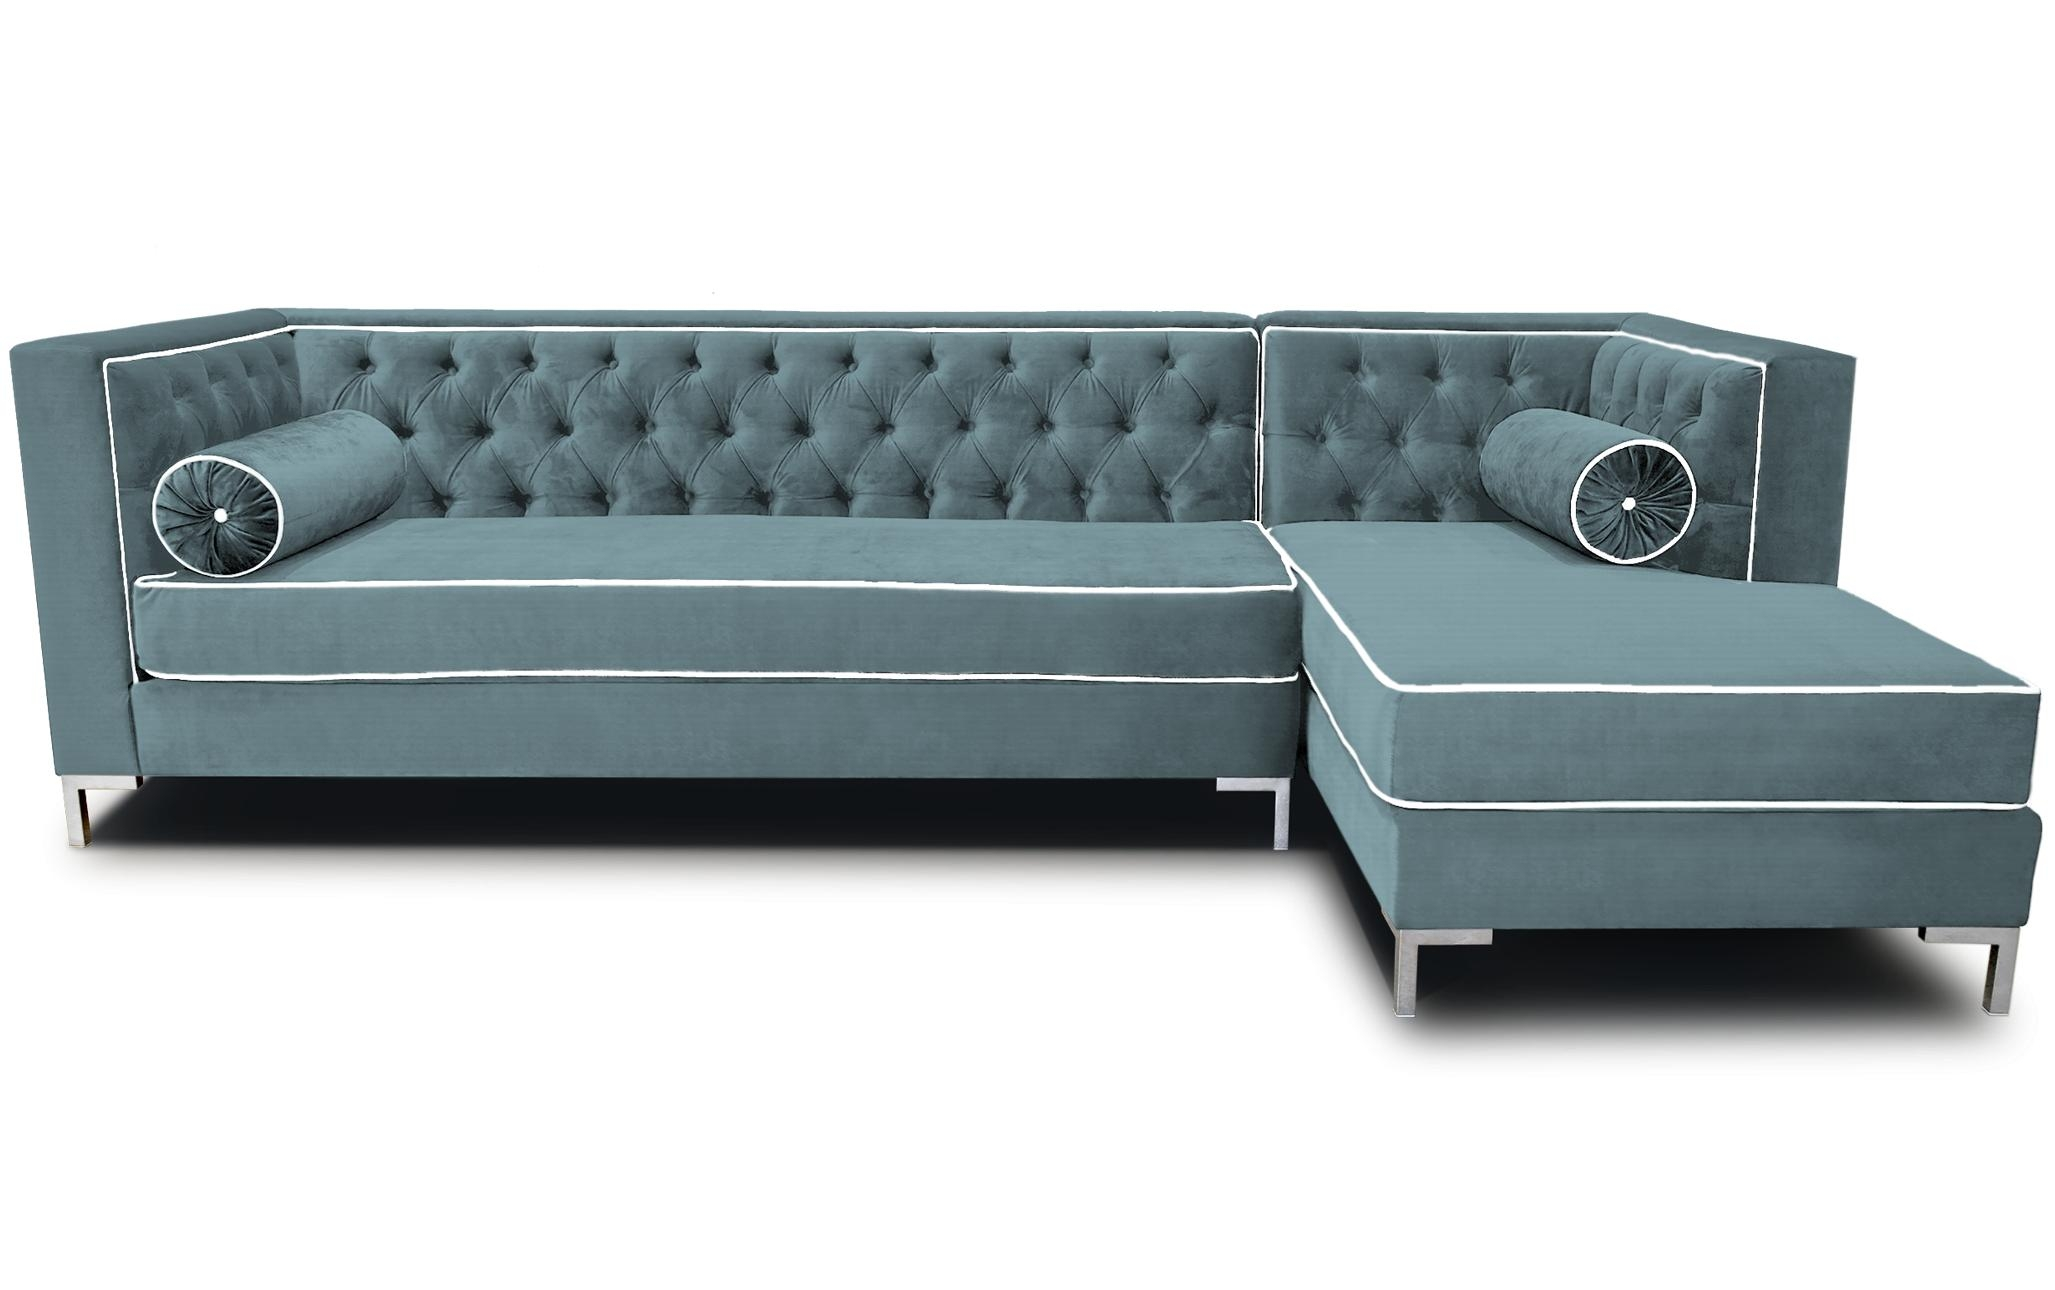 Sofas Center : 41 Stunning Tufted Sleeper Sofa Photo Design Tufted with Tufted Sleeper Sofas